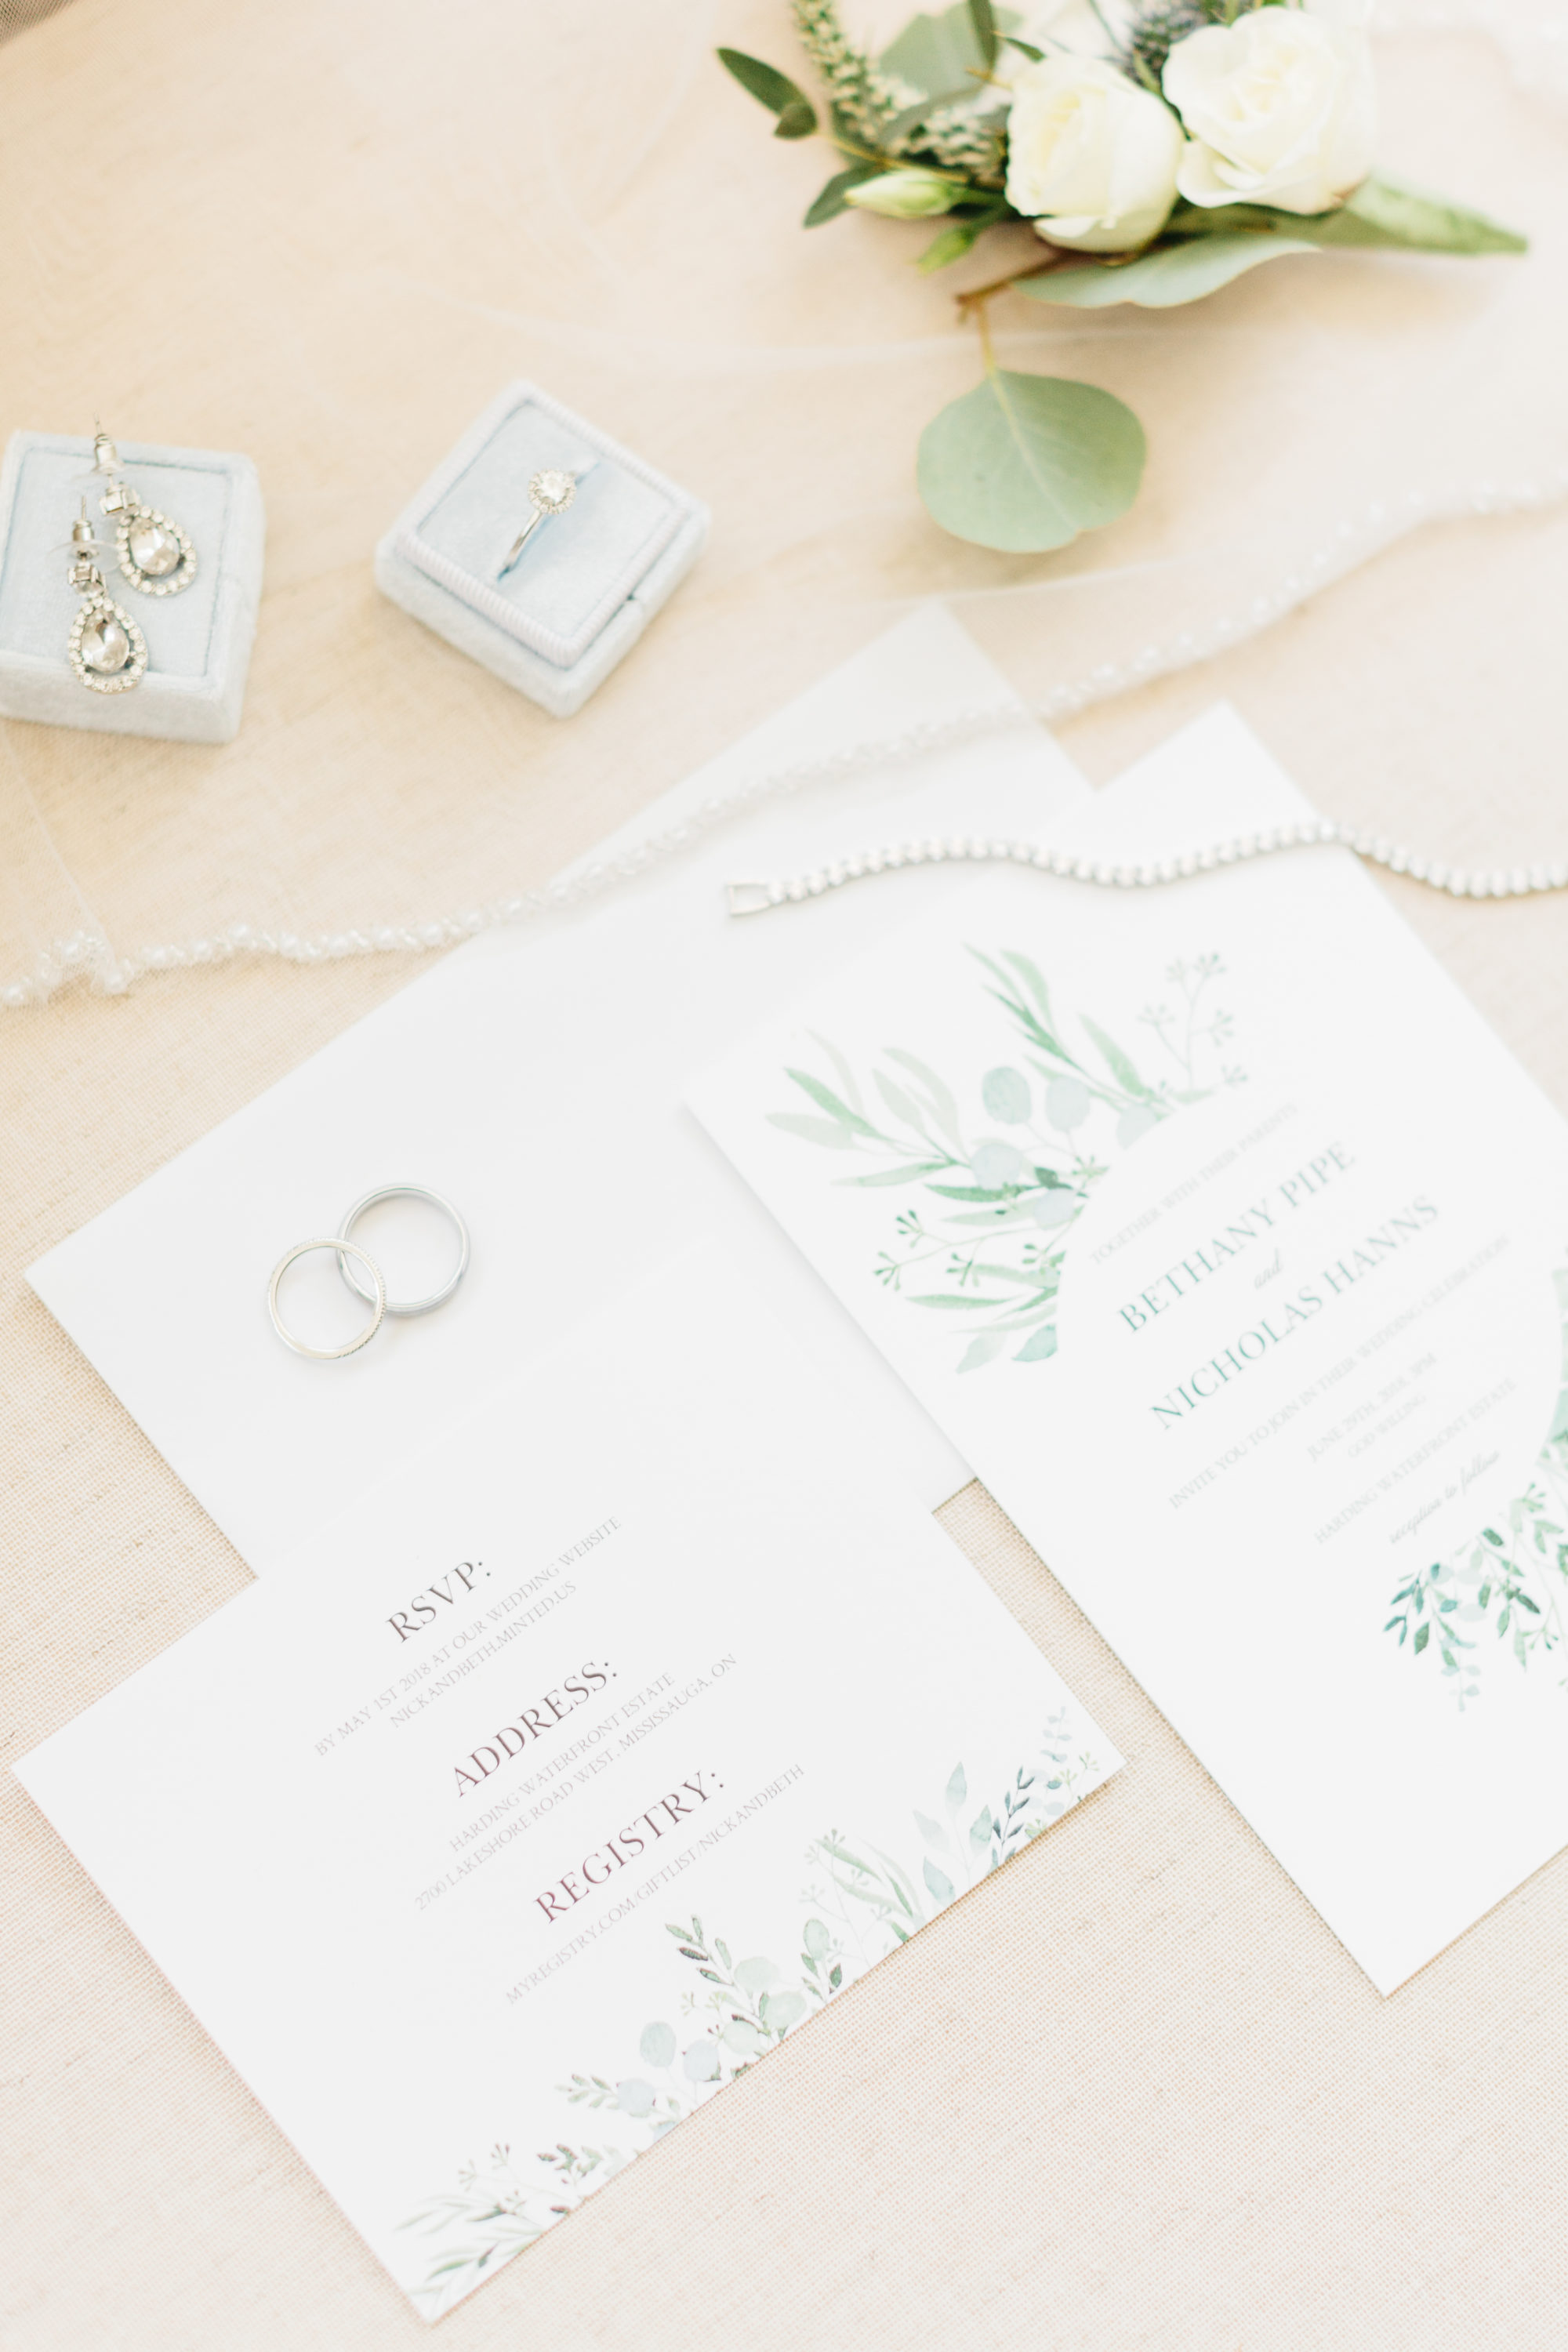 Bride's stationary details